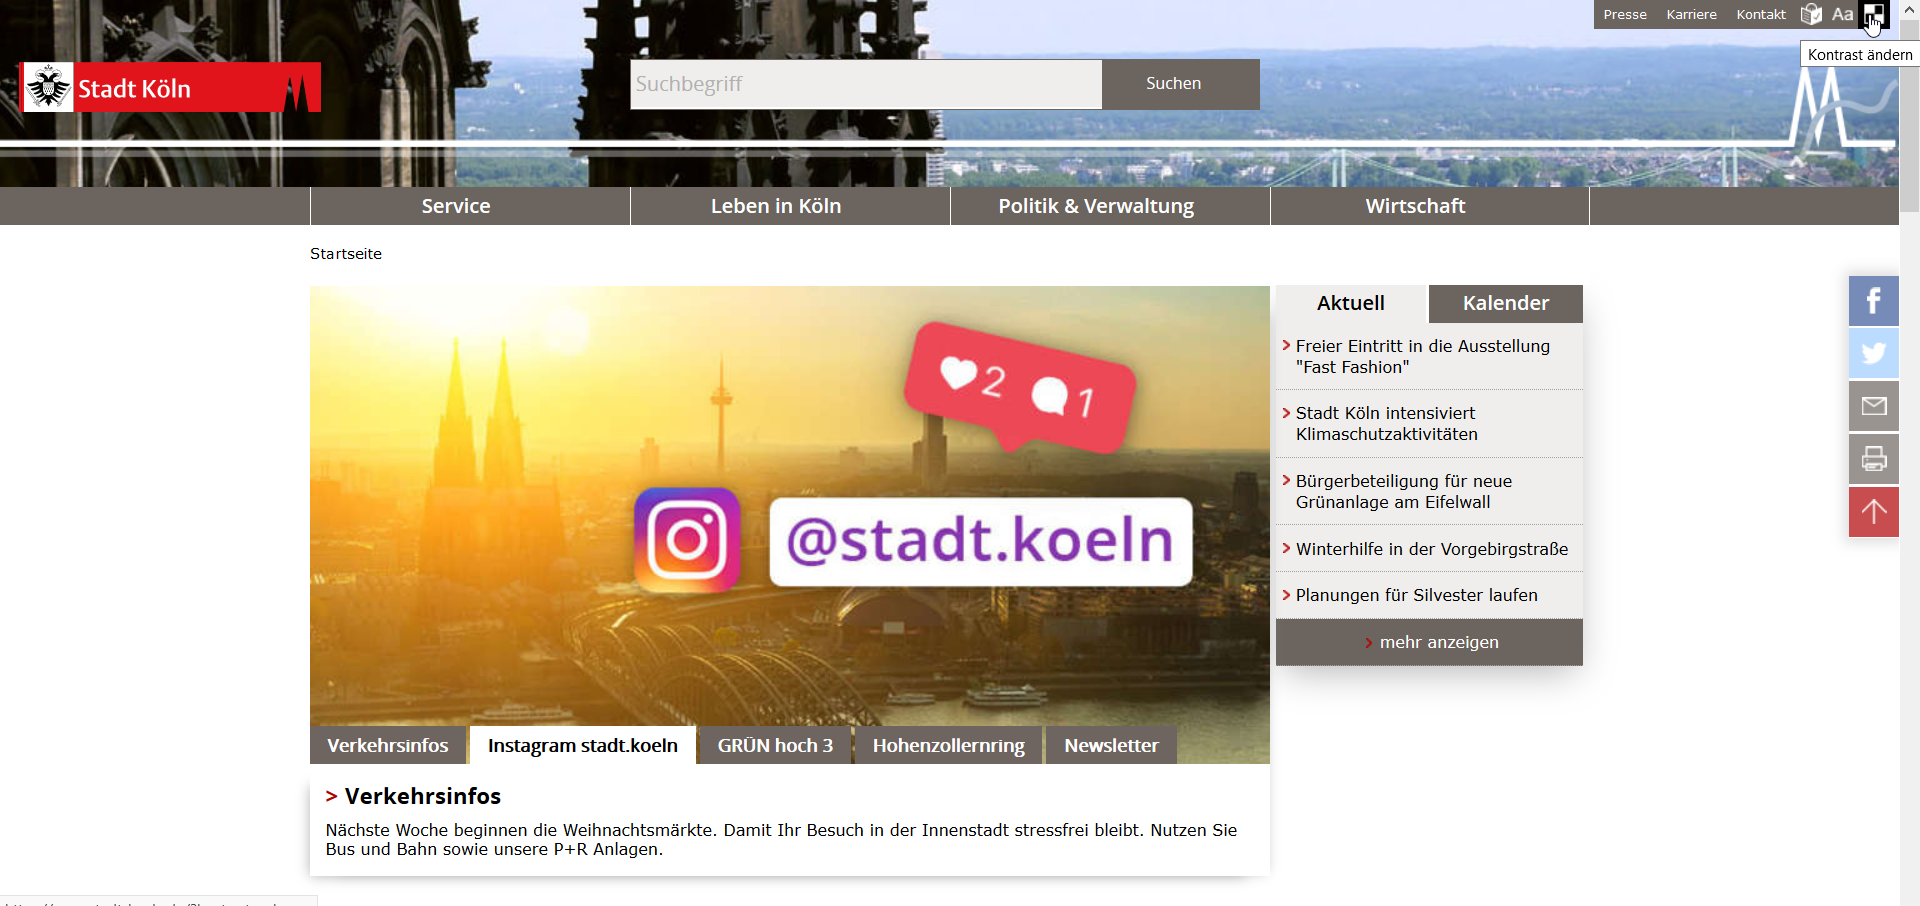 Screenshot of the website of the City of Cologne, custom contrast mode